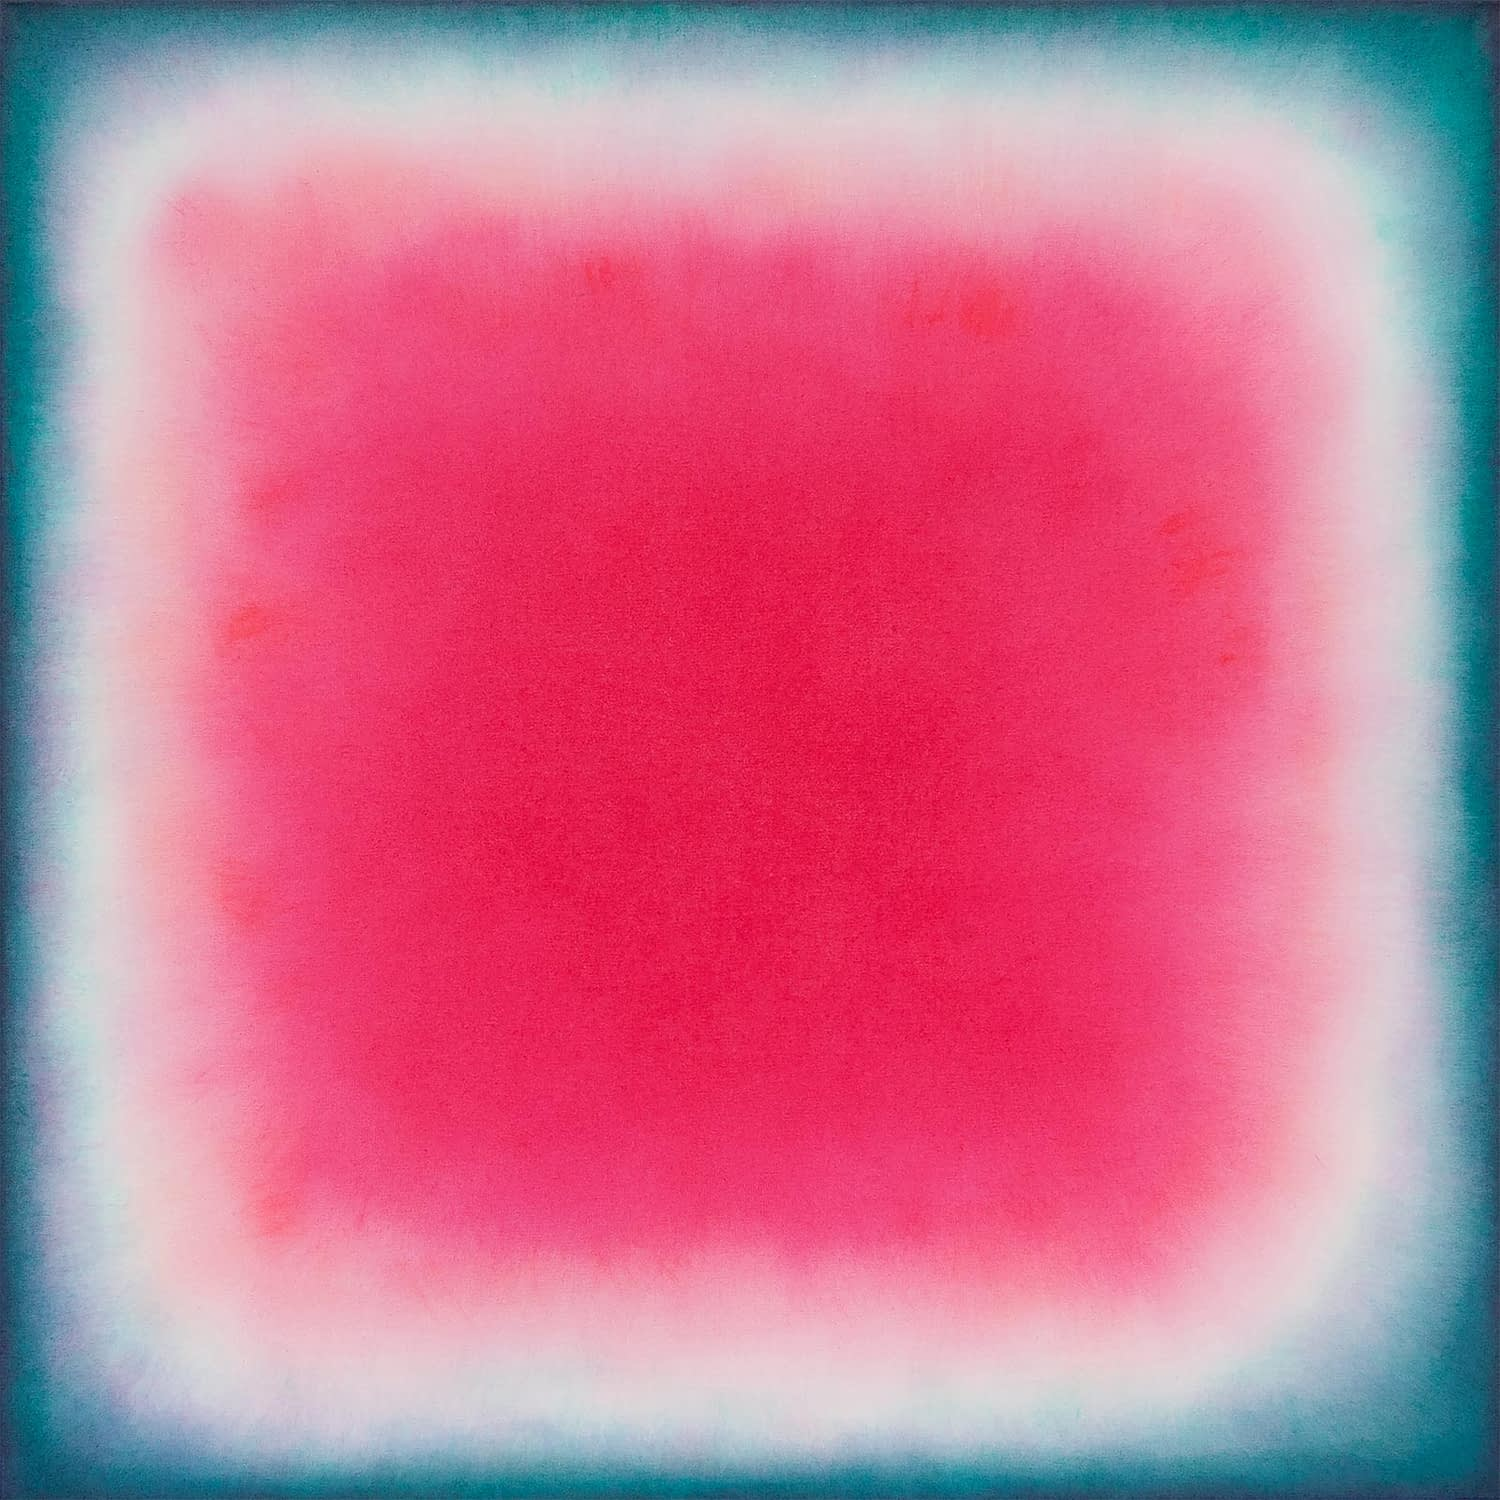 watermelon | 2020 | oil on canvas | 100 x 100 cm